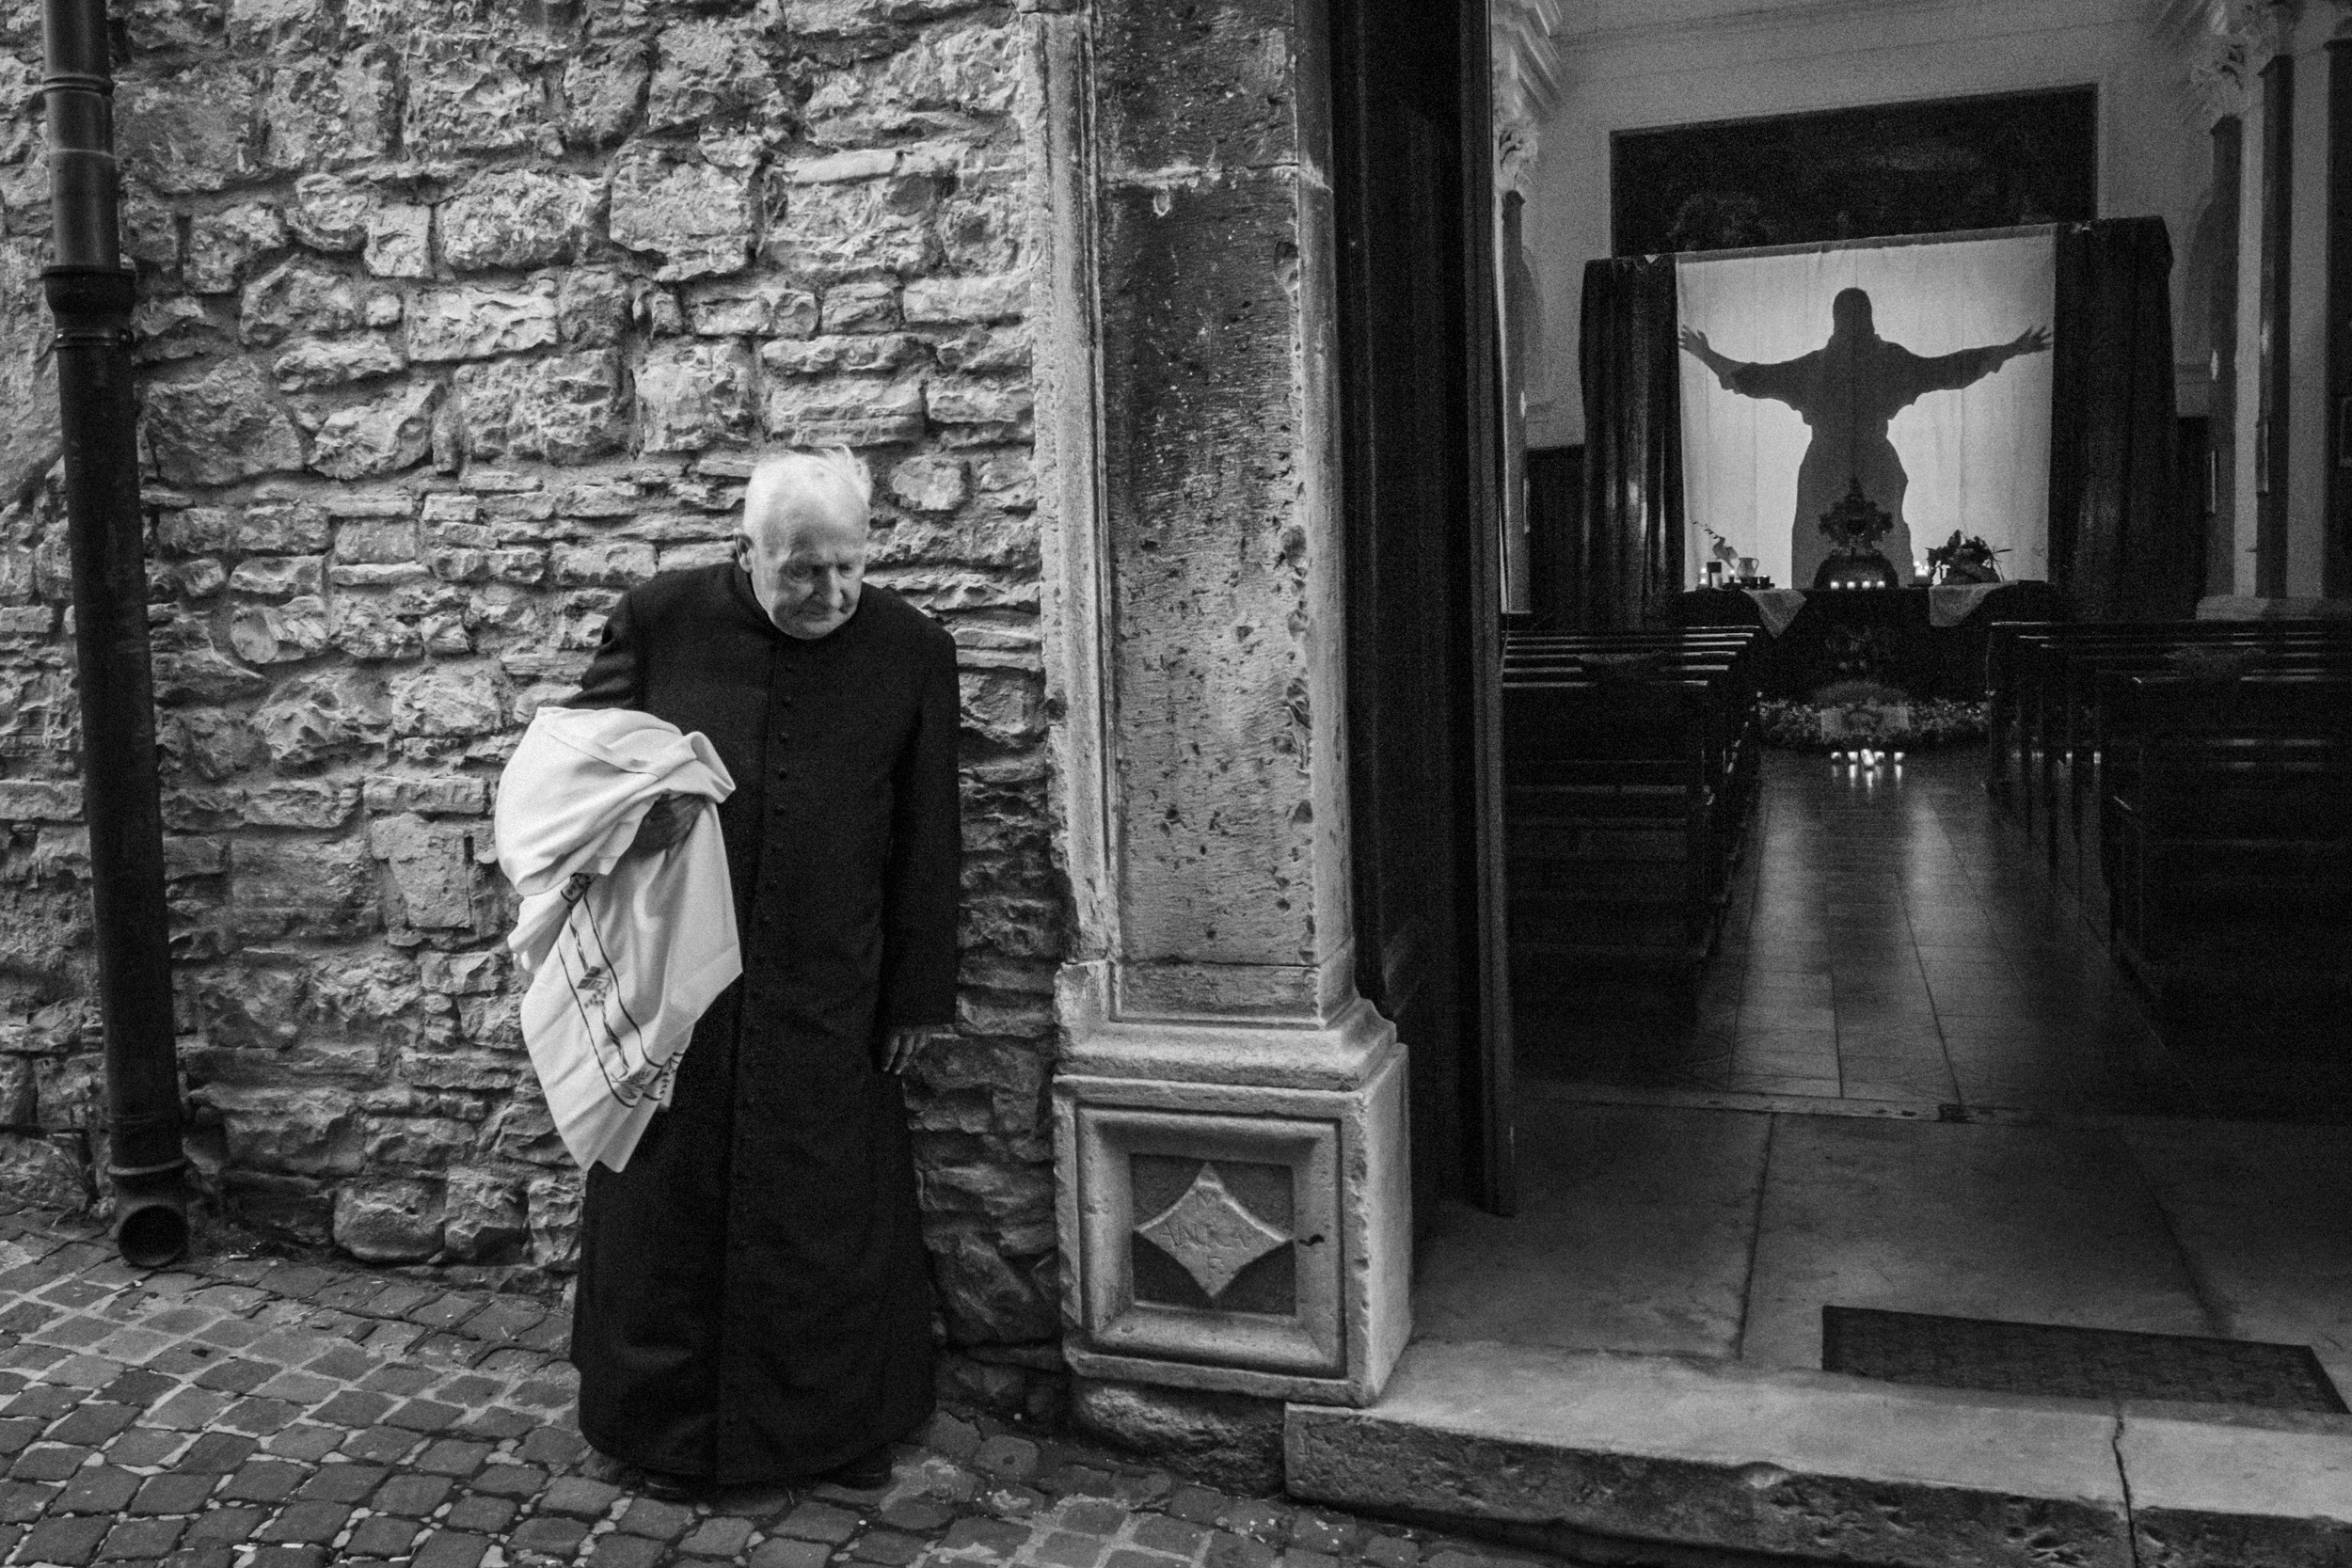 Agnone (IS), Italy - April 2017. Father Don Alessandro Di Sabato at the exit of the Santa Croce Church after the opening of the Sepulchre, typical of Holy Thursday.